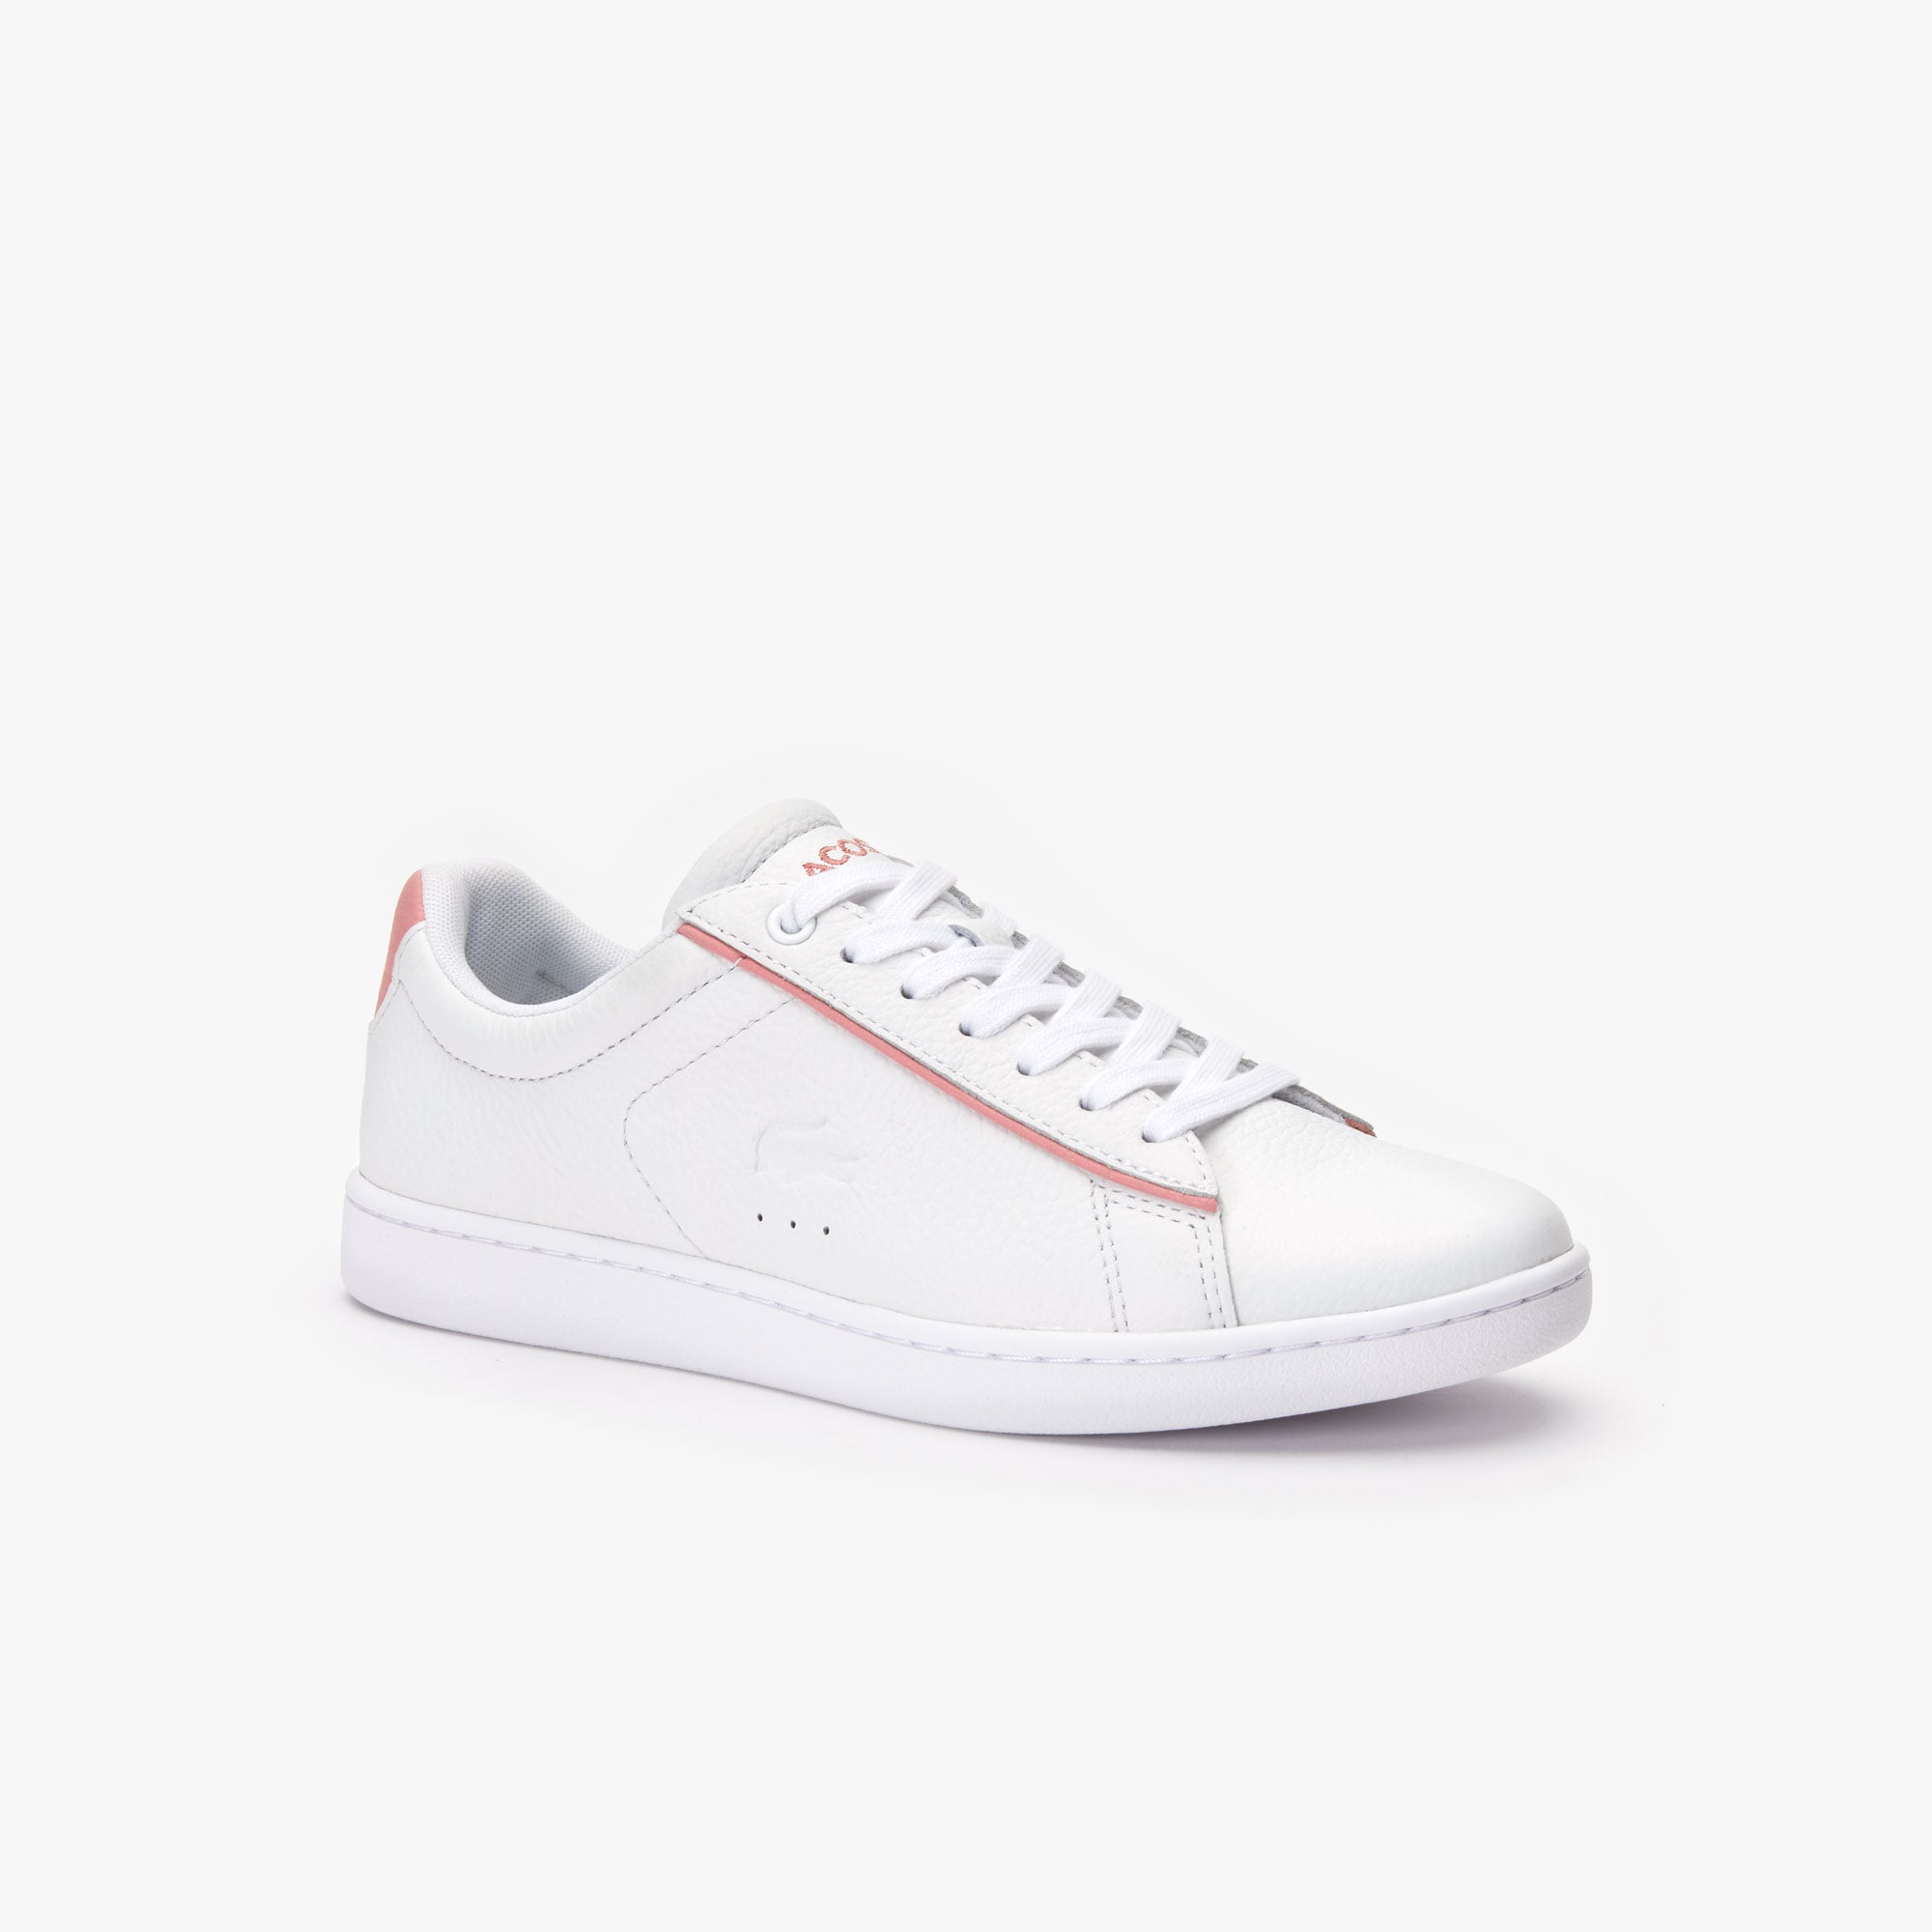 Chaussures FemmeCollection Lacoste Lacoste FemmeCollection FemmeCollection Chaussures Lacoste Chaussures PXZNn08wOk